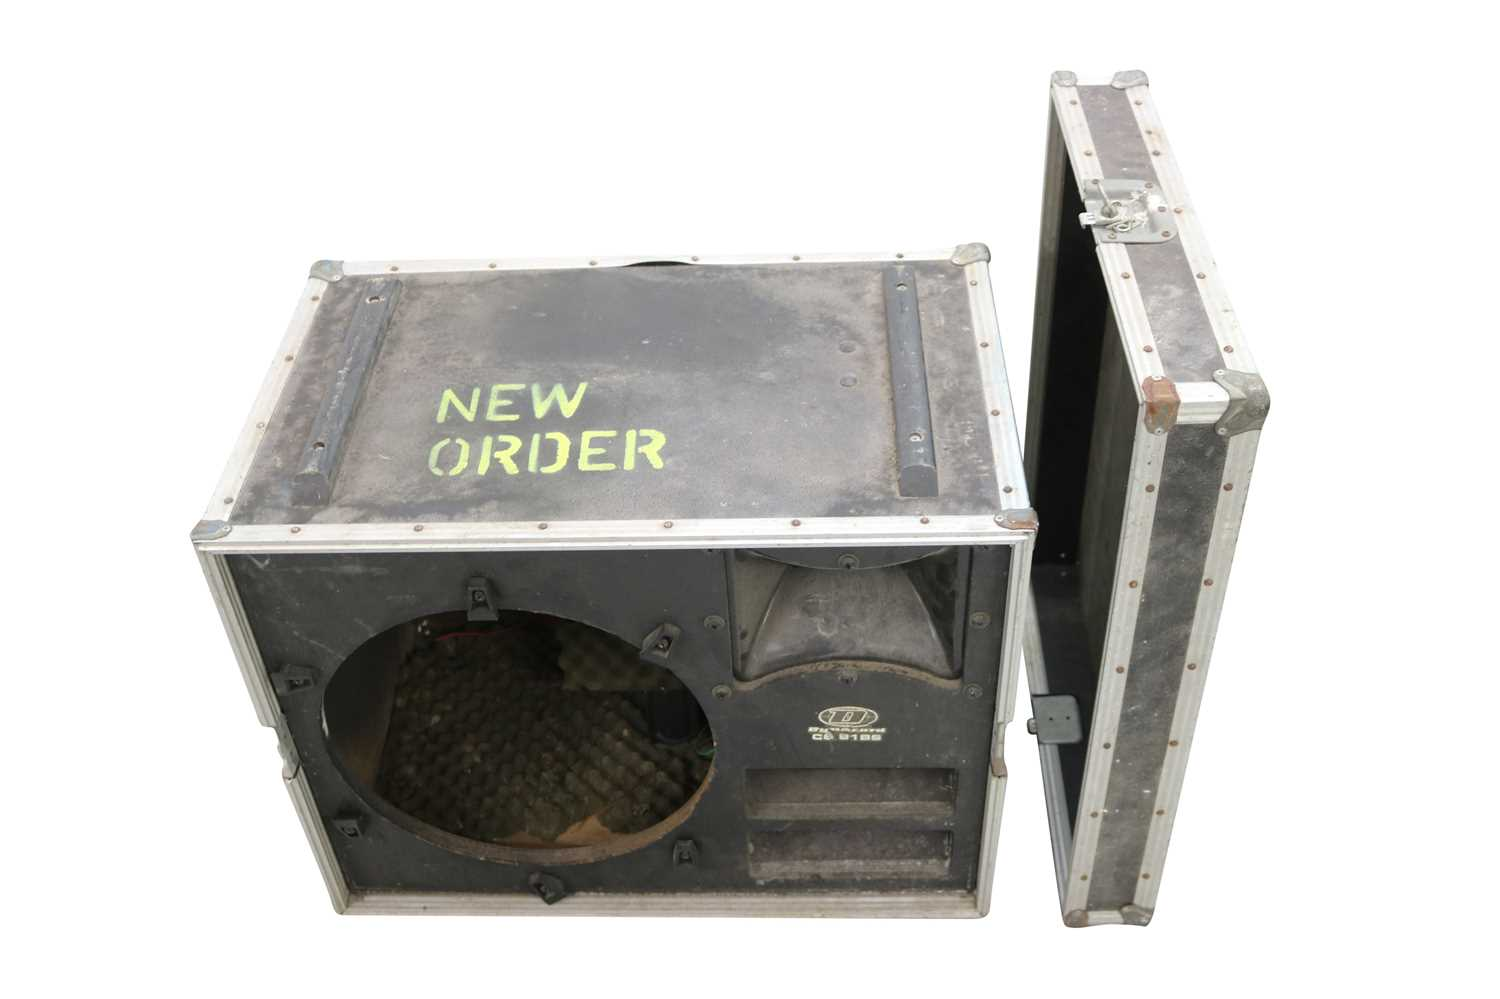 NEW ORDER BASS SPEAKERS FLIGHT CASES x5 - Image 2 of 7